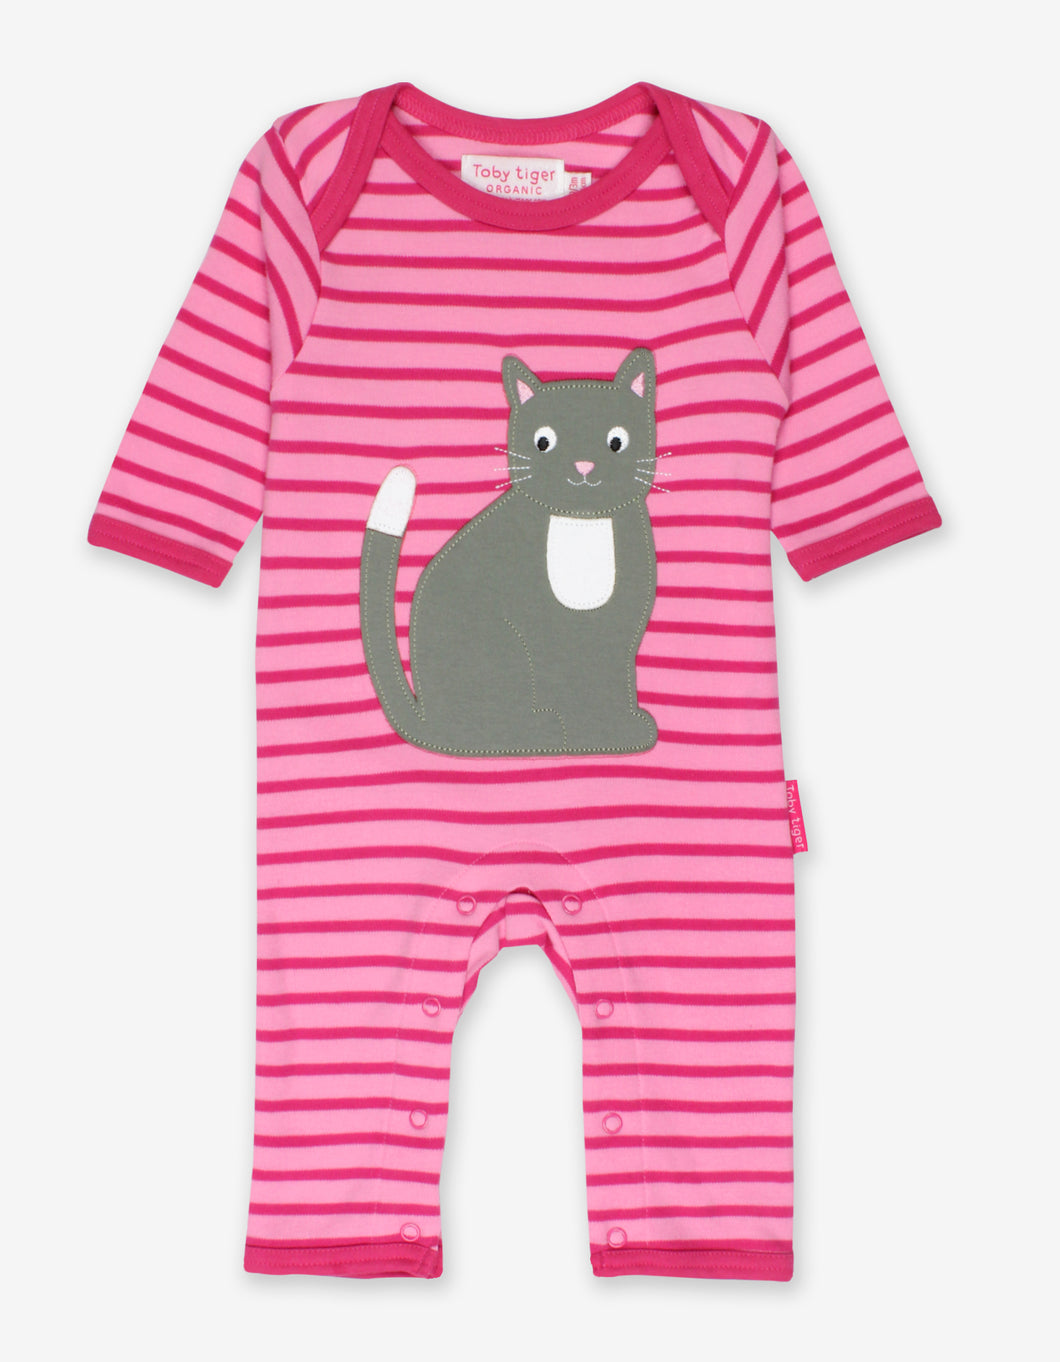 Organic Kitten Applique Sleepsuit